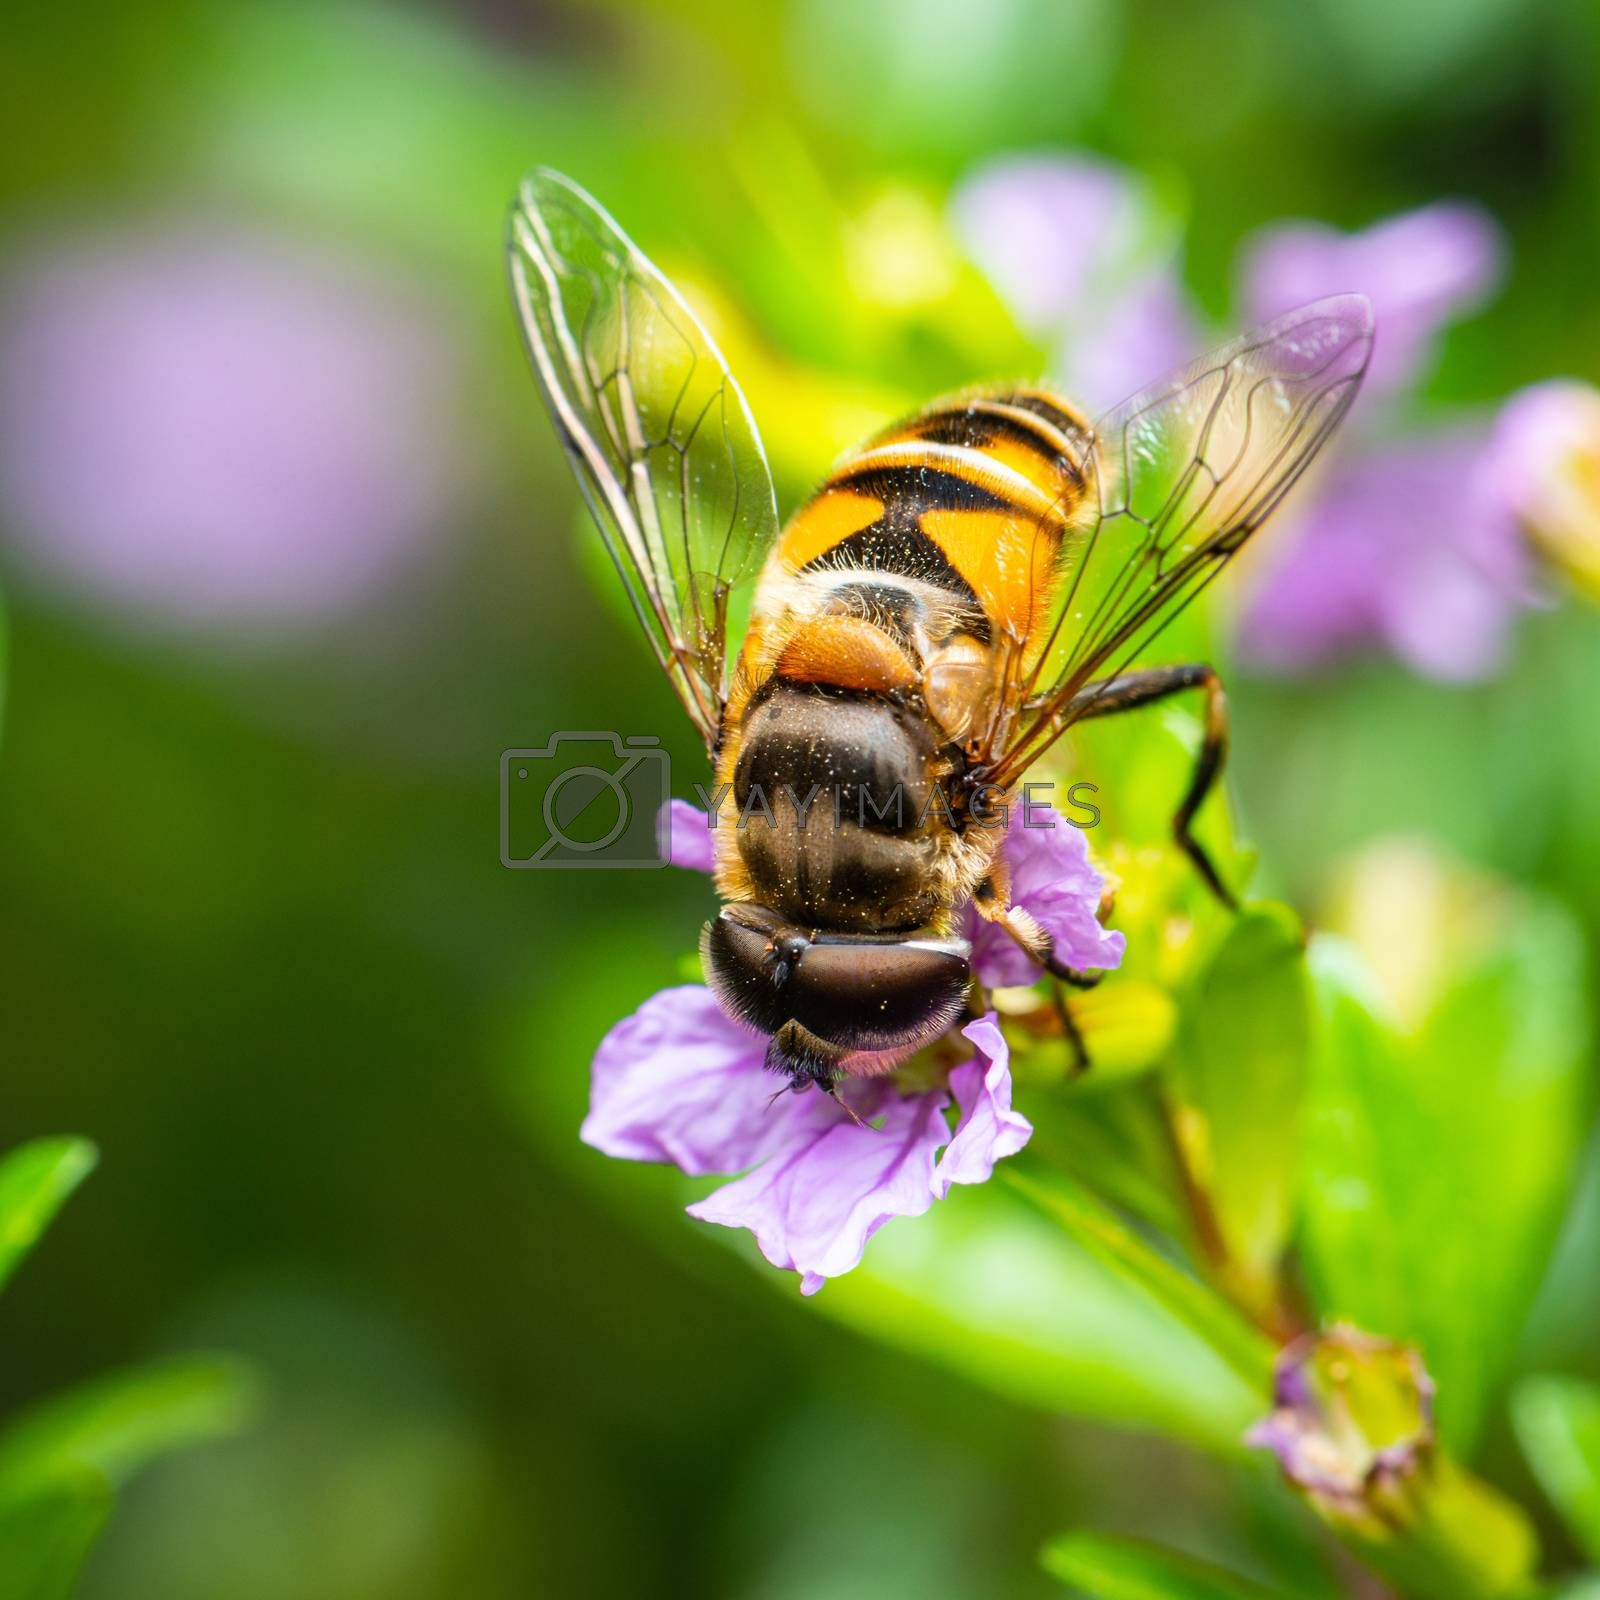 Macro shot of a bee eating pollen from a false heather flower